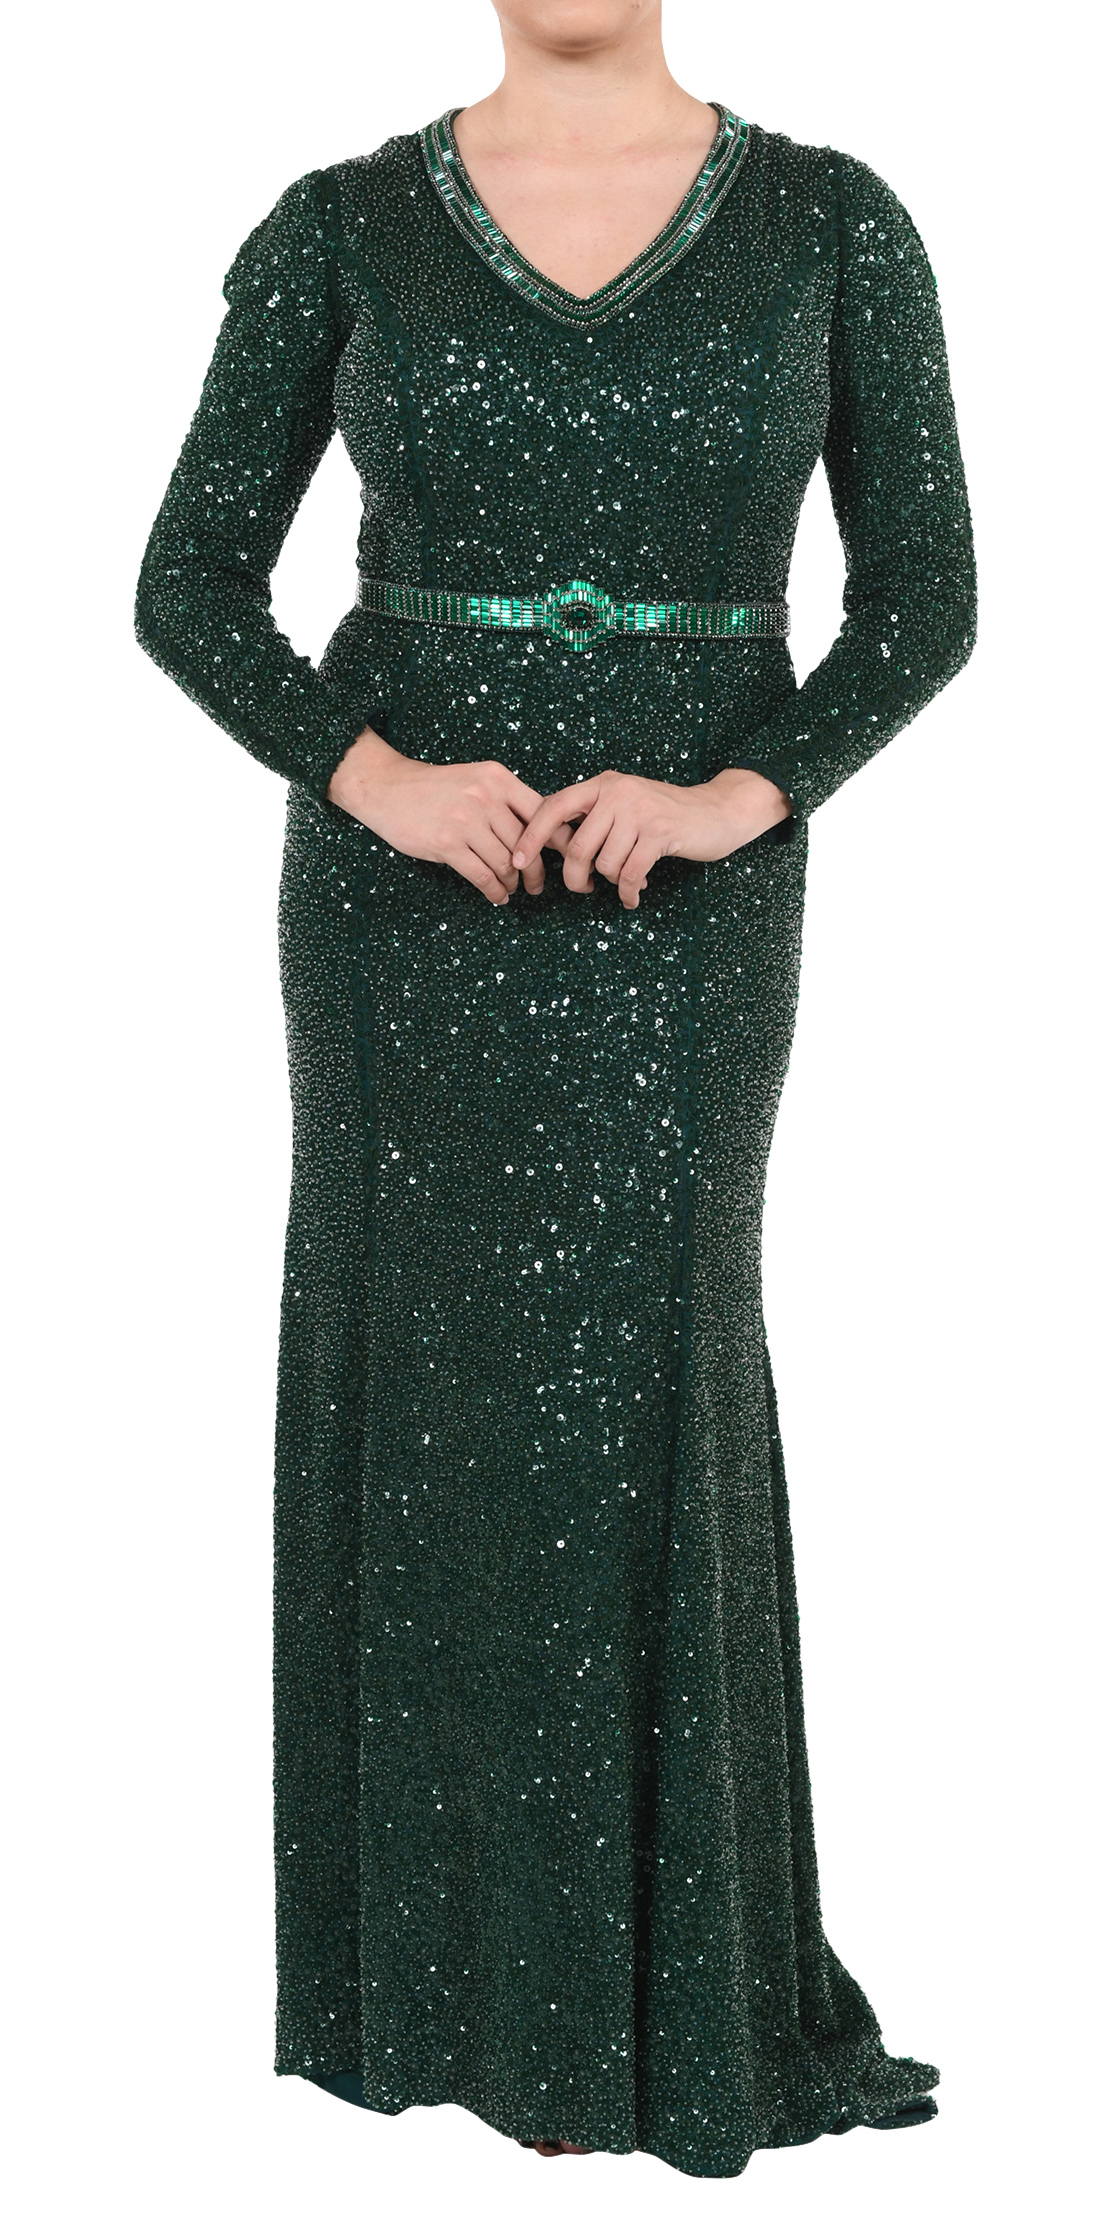 Sequined Rent Sleeve Andrew Dress 24 Long Lebanon Designer In Gn 6yvbgf7Y